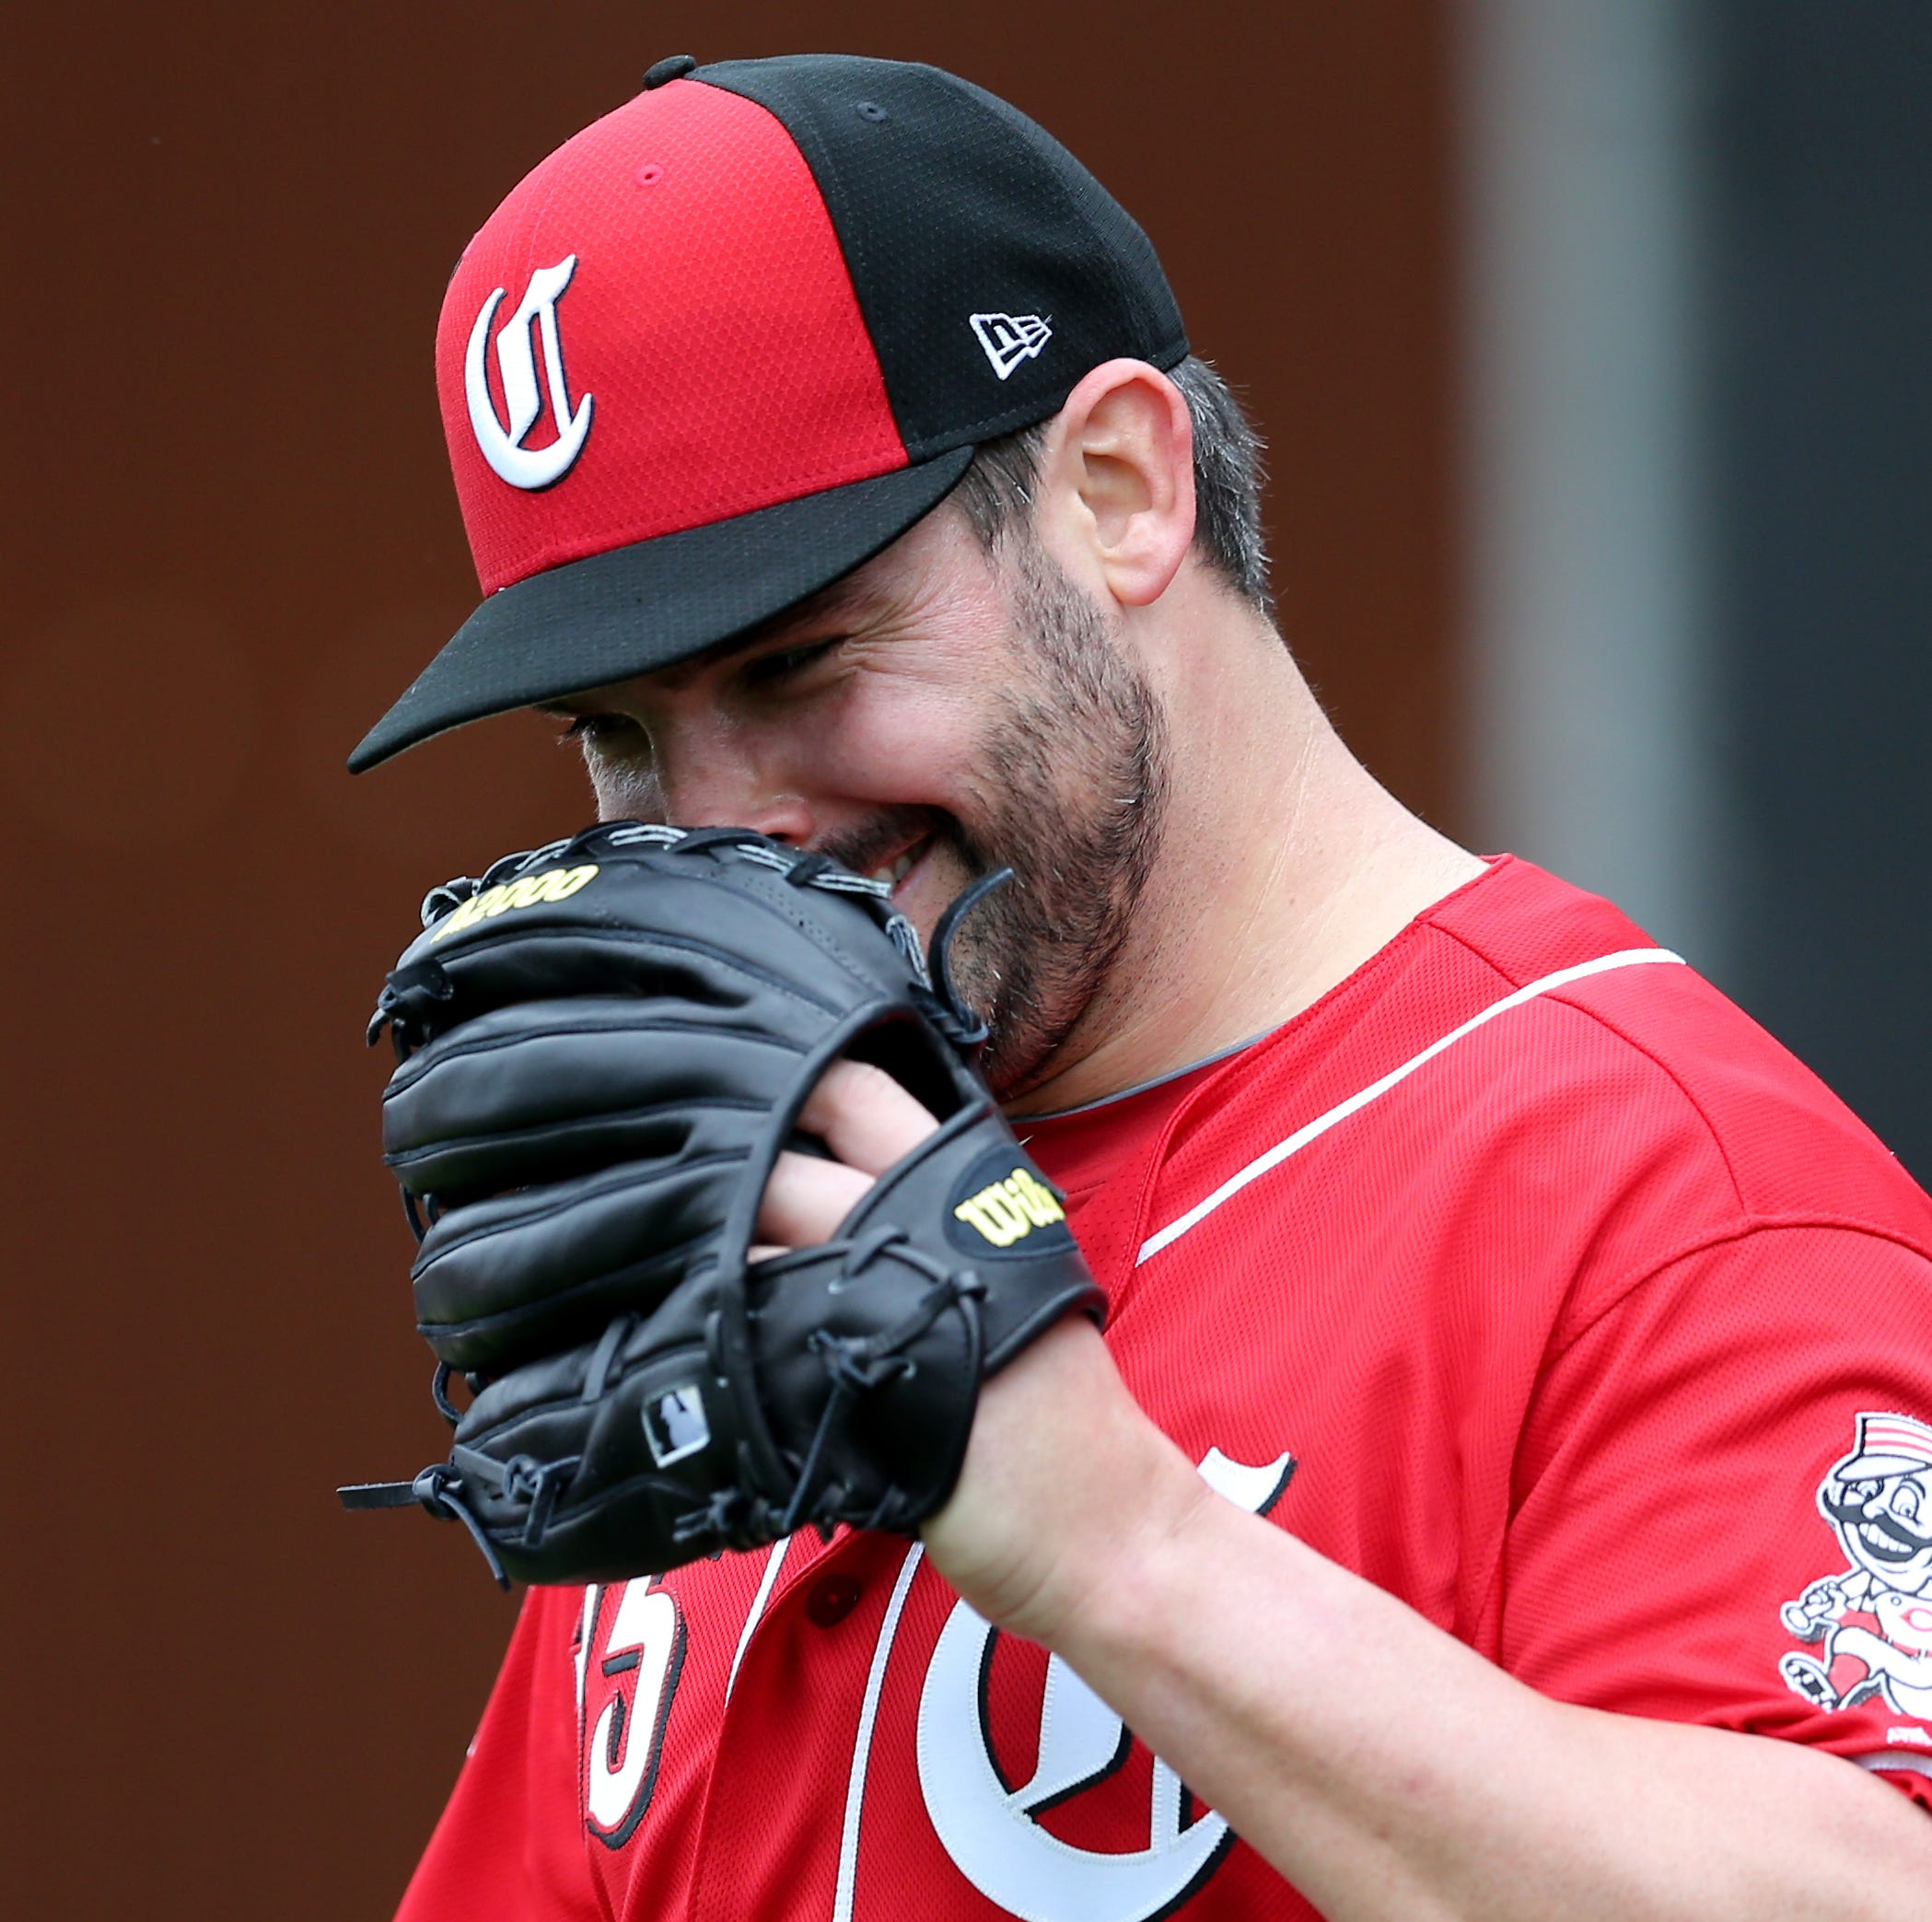 Tanner Roark strikes out 8 in 5 scoreless innings during Cincinnati Reds' 8-1 loss to Los Angeles Dodgers